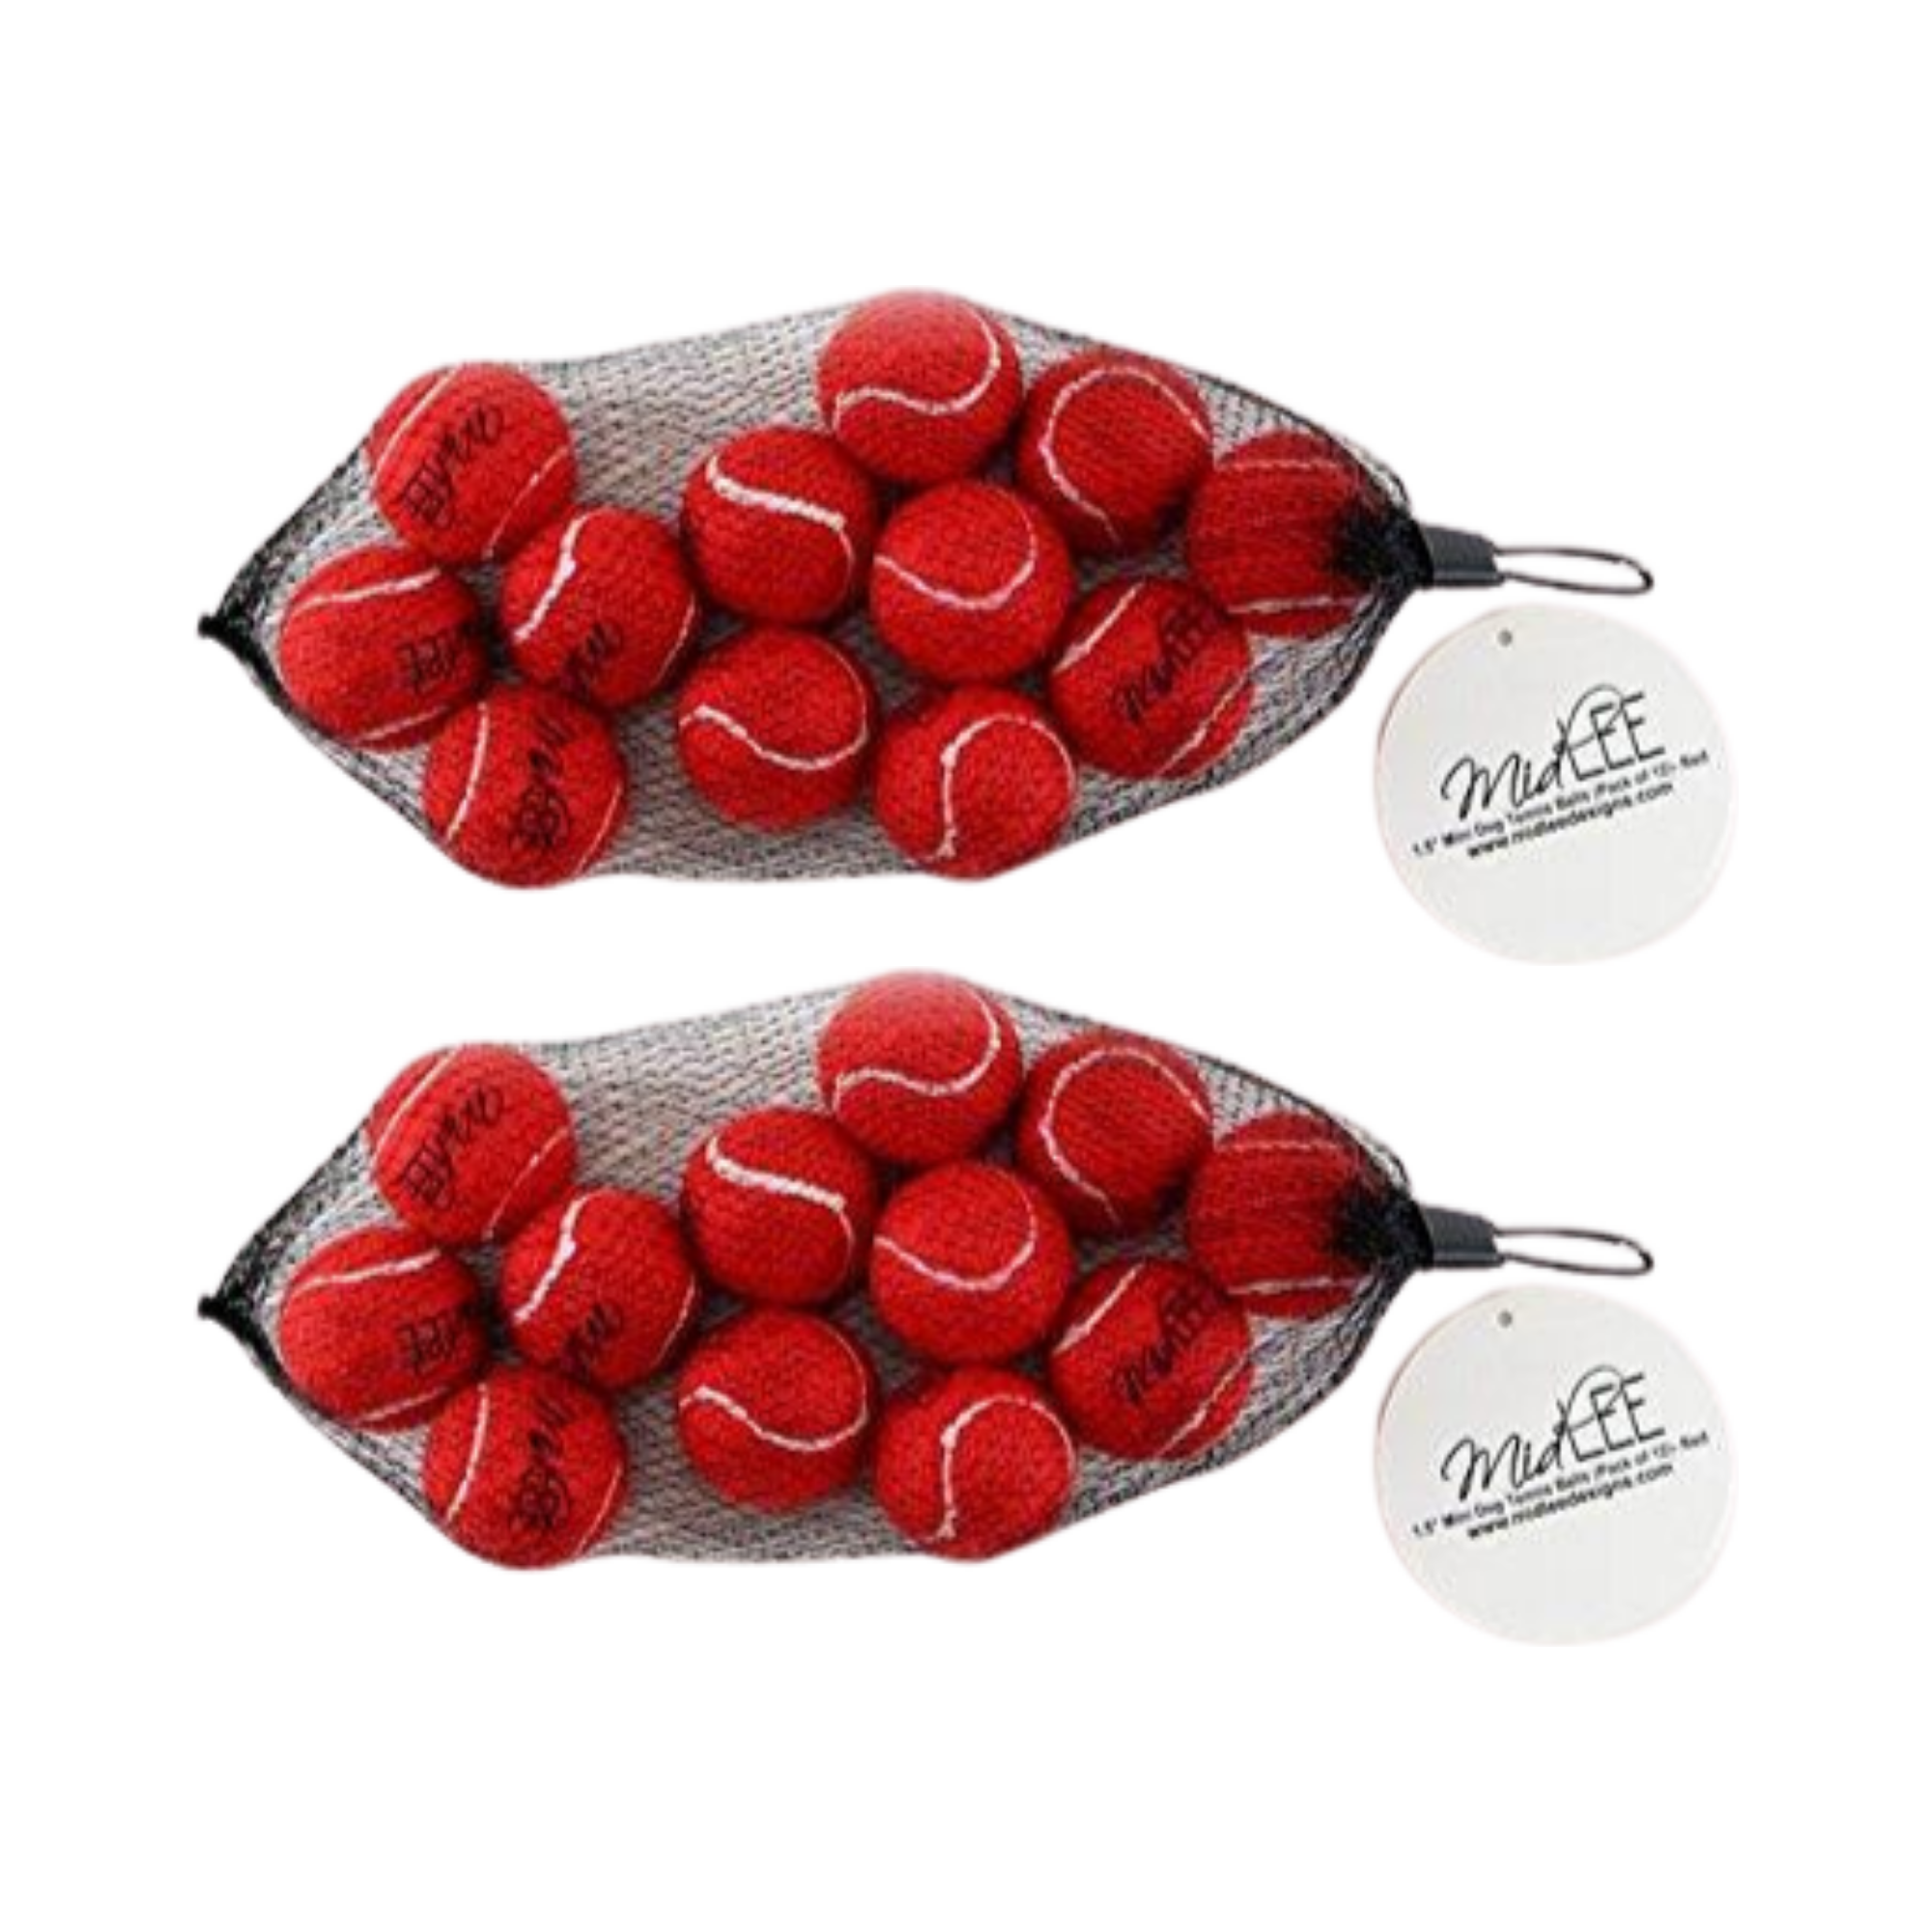 "Midlee X-Small Dog Tennis Balls 1.5"" Pack of 12 (Red, 1.5 inch Set of 2)"